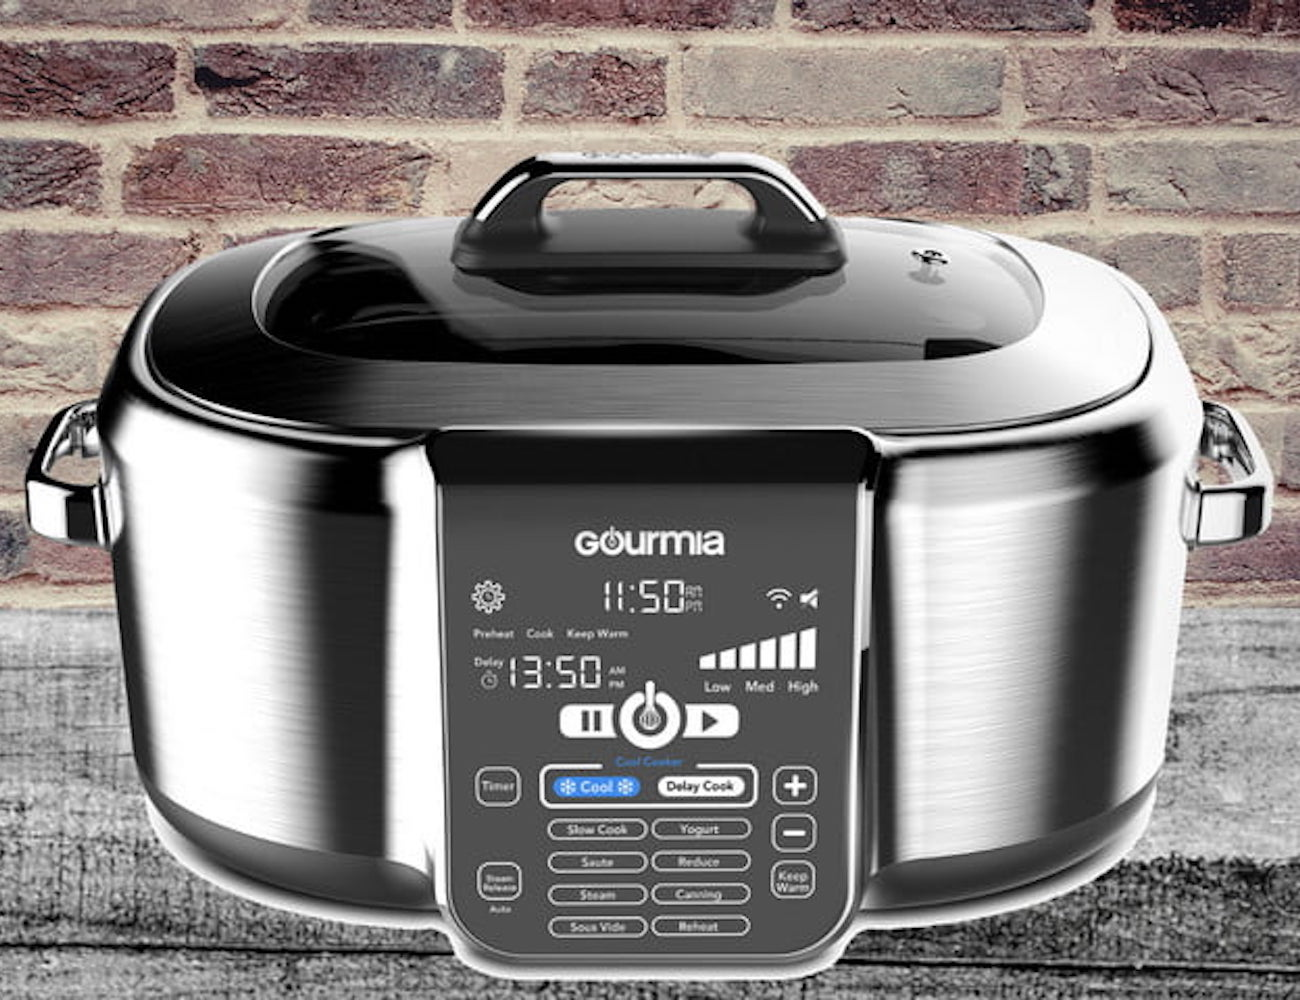 Gourmia Cool-Cooker Countertop Cooking Devices make preparation easier